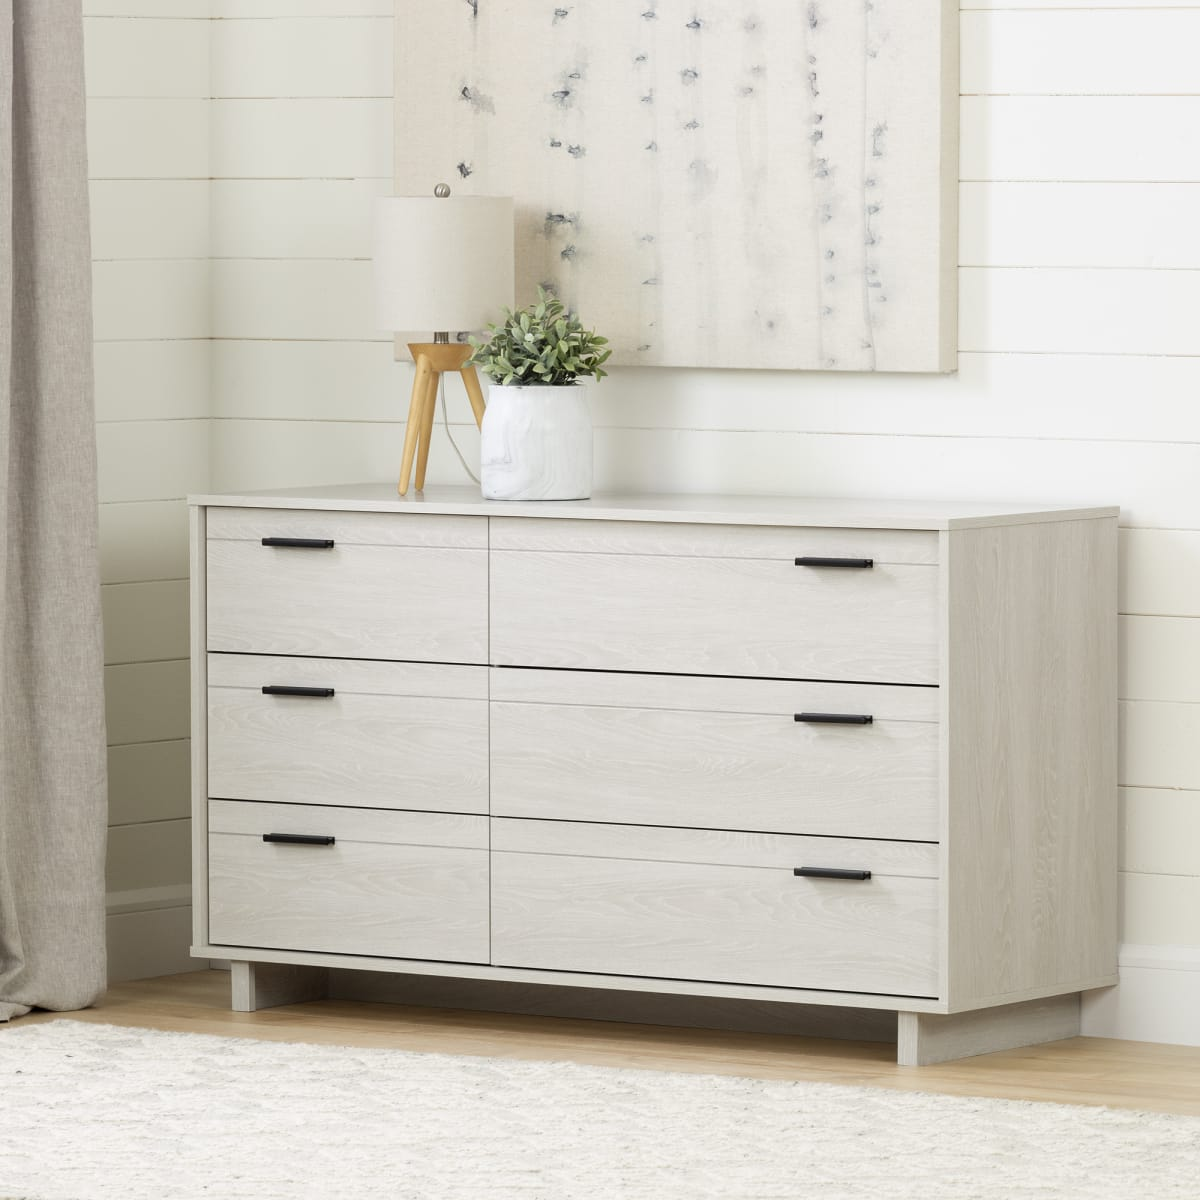 Fynn 6 Drawer Double Dresser Dresser Kids Bedroom Baby And Kids Products South Shore Furniture Us Furniture For Sale Designed And Manufactured In North America